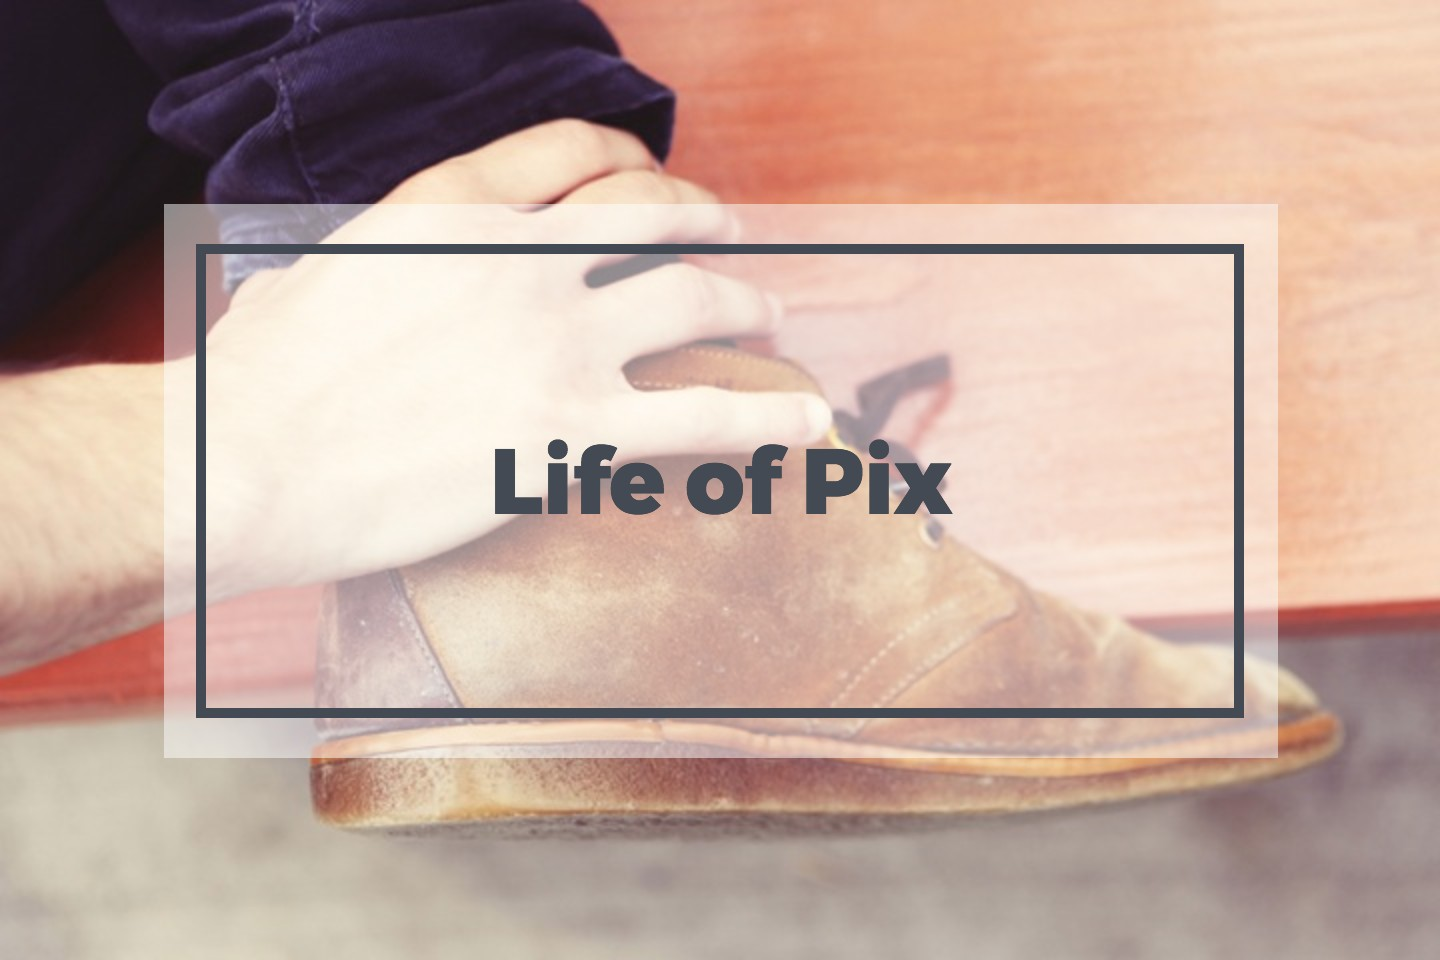 Life of Pix fotos de stock gratis